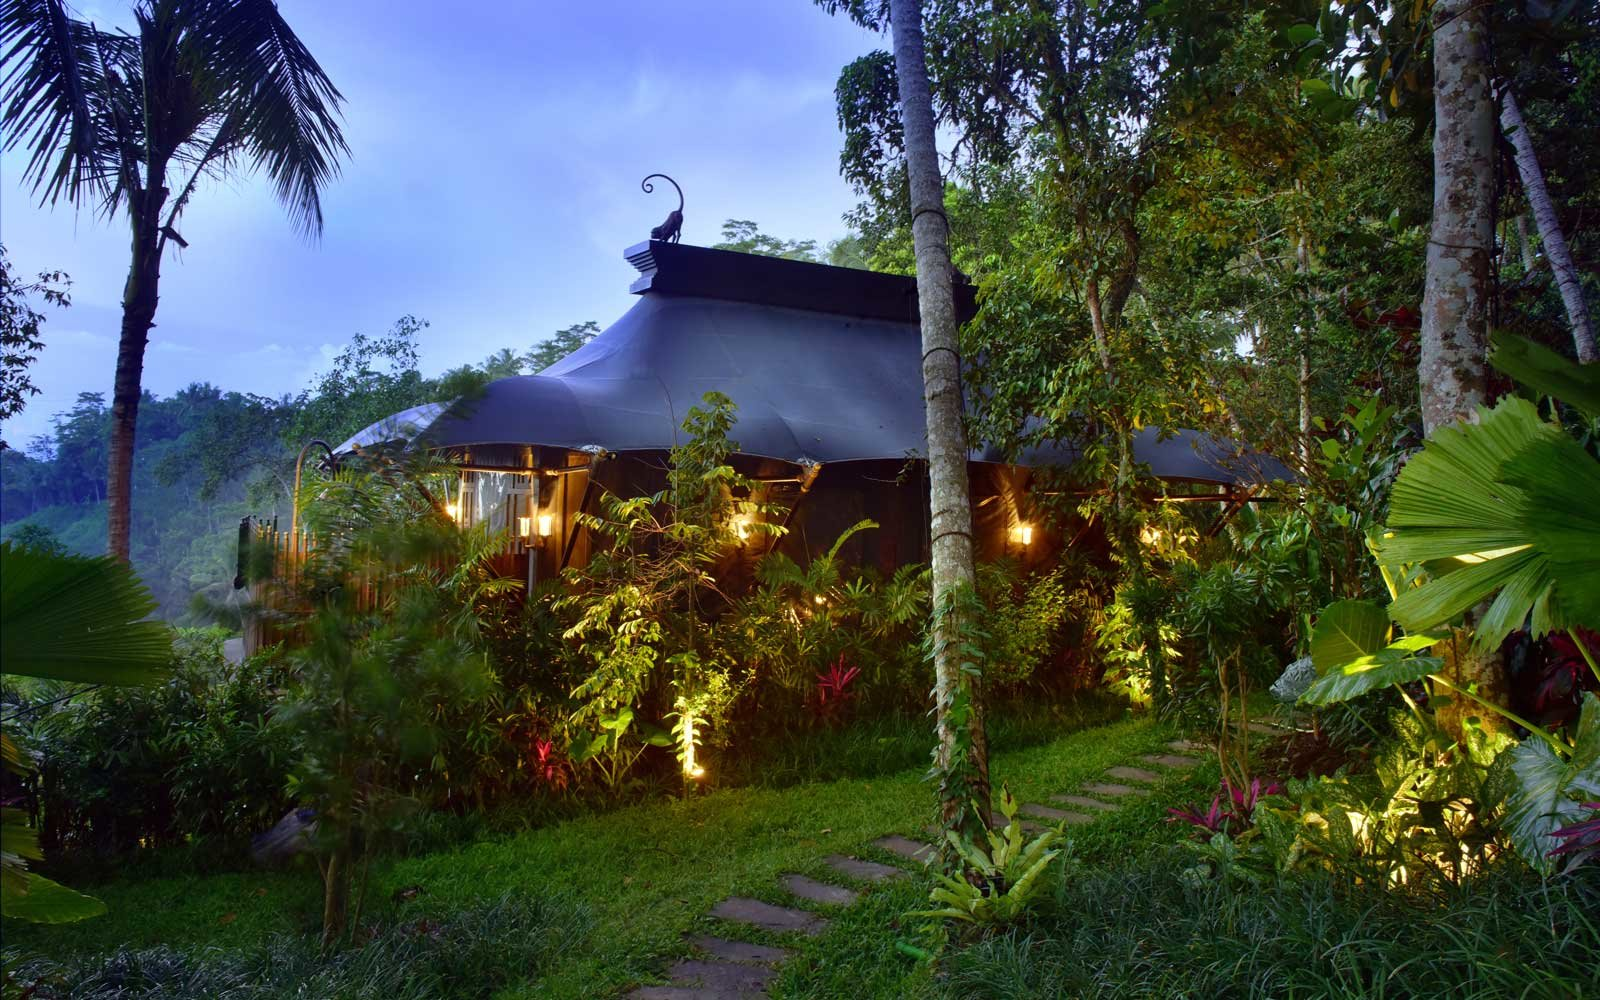 Luxury Tent at the Capella Ubud Hotel in Bali, Indonesia